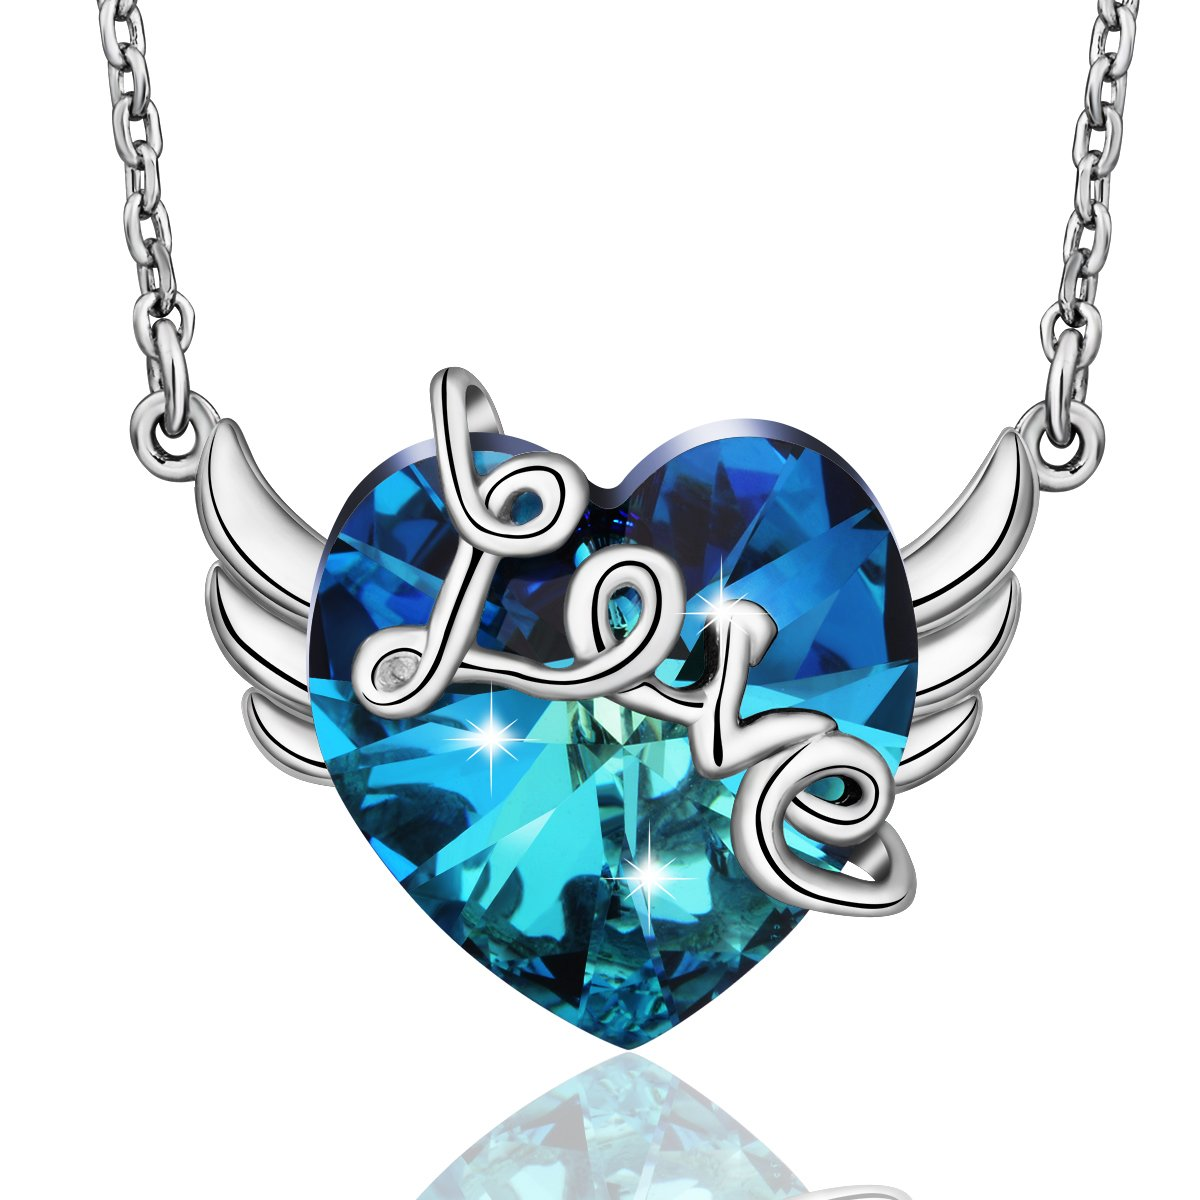 100 Pieces Angel Wing Heart Love Valentines Day Charm Pendant Jewelry Making